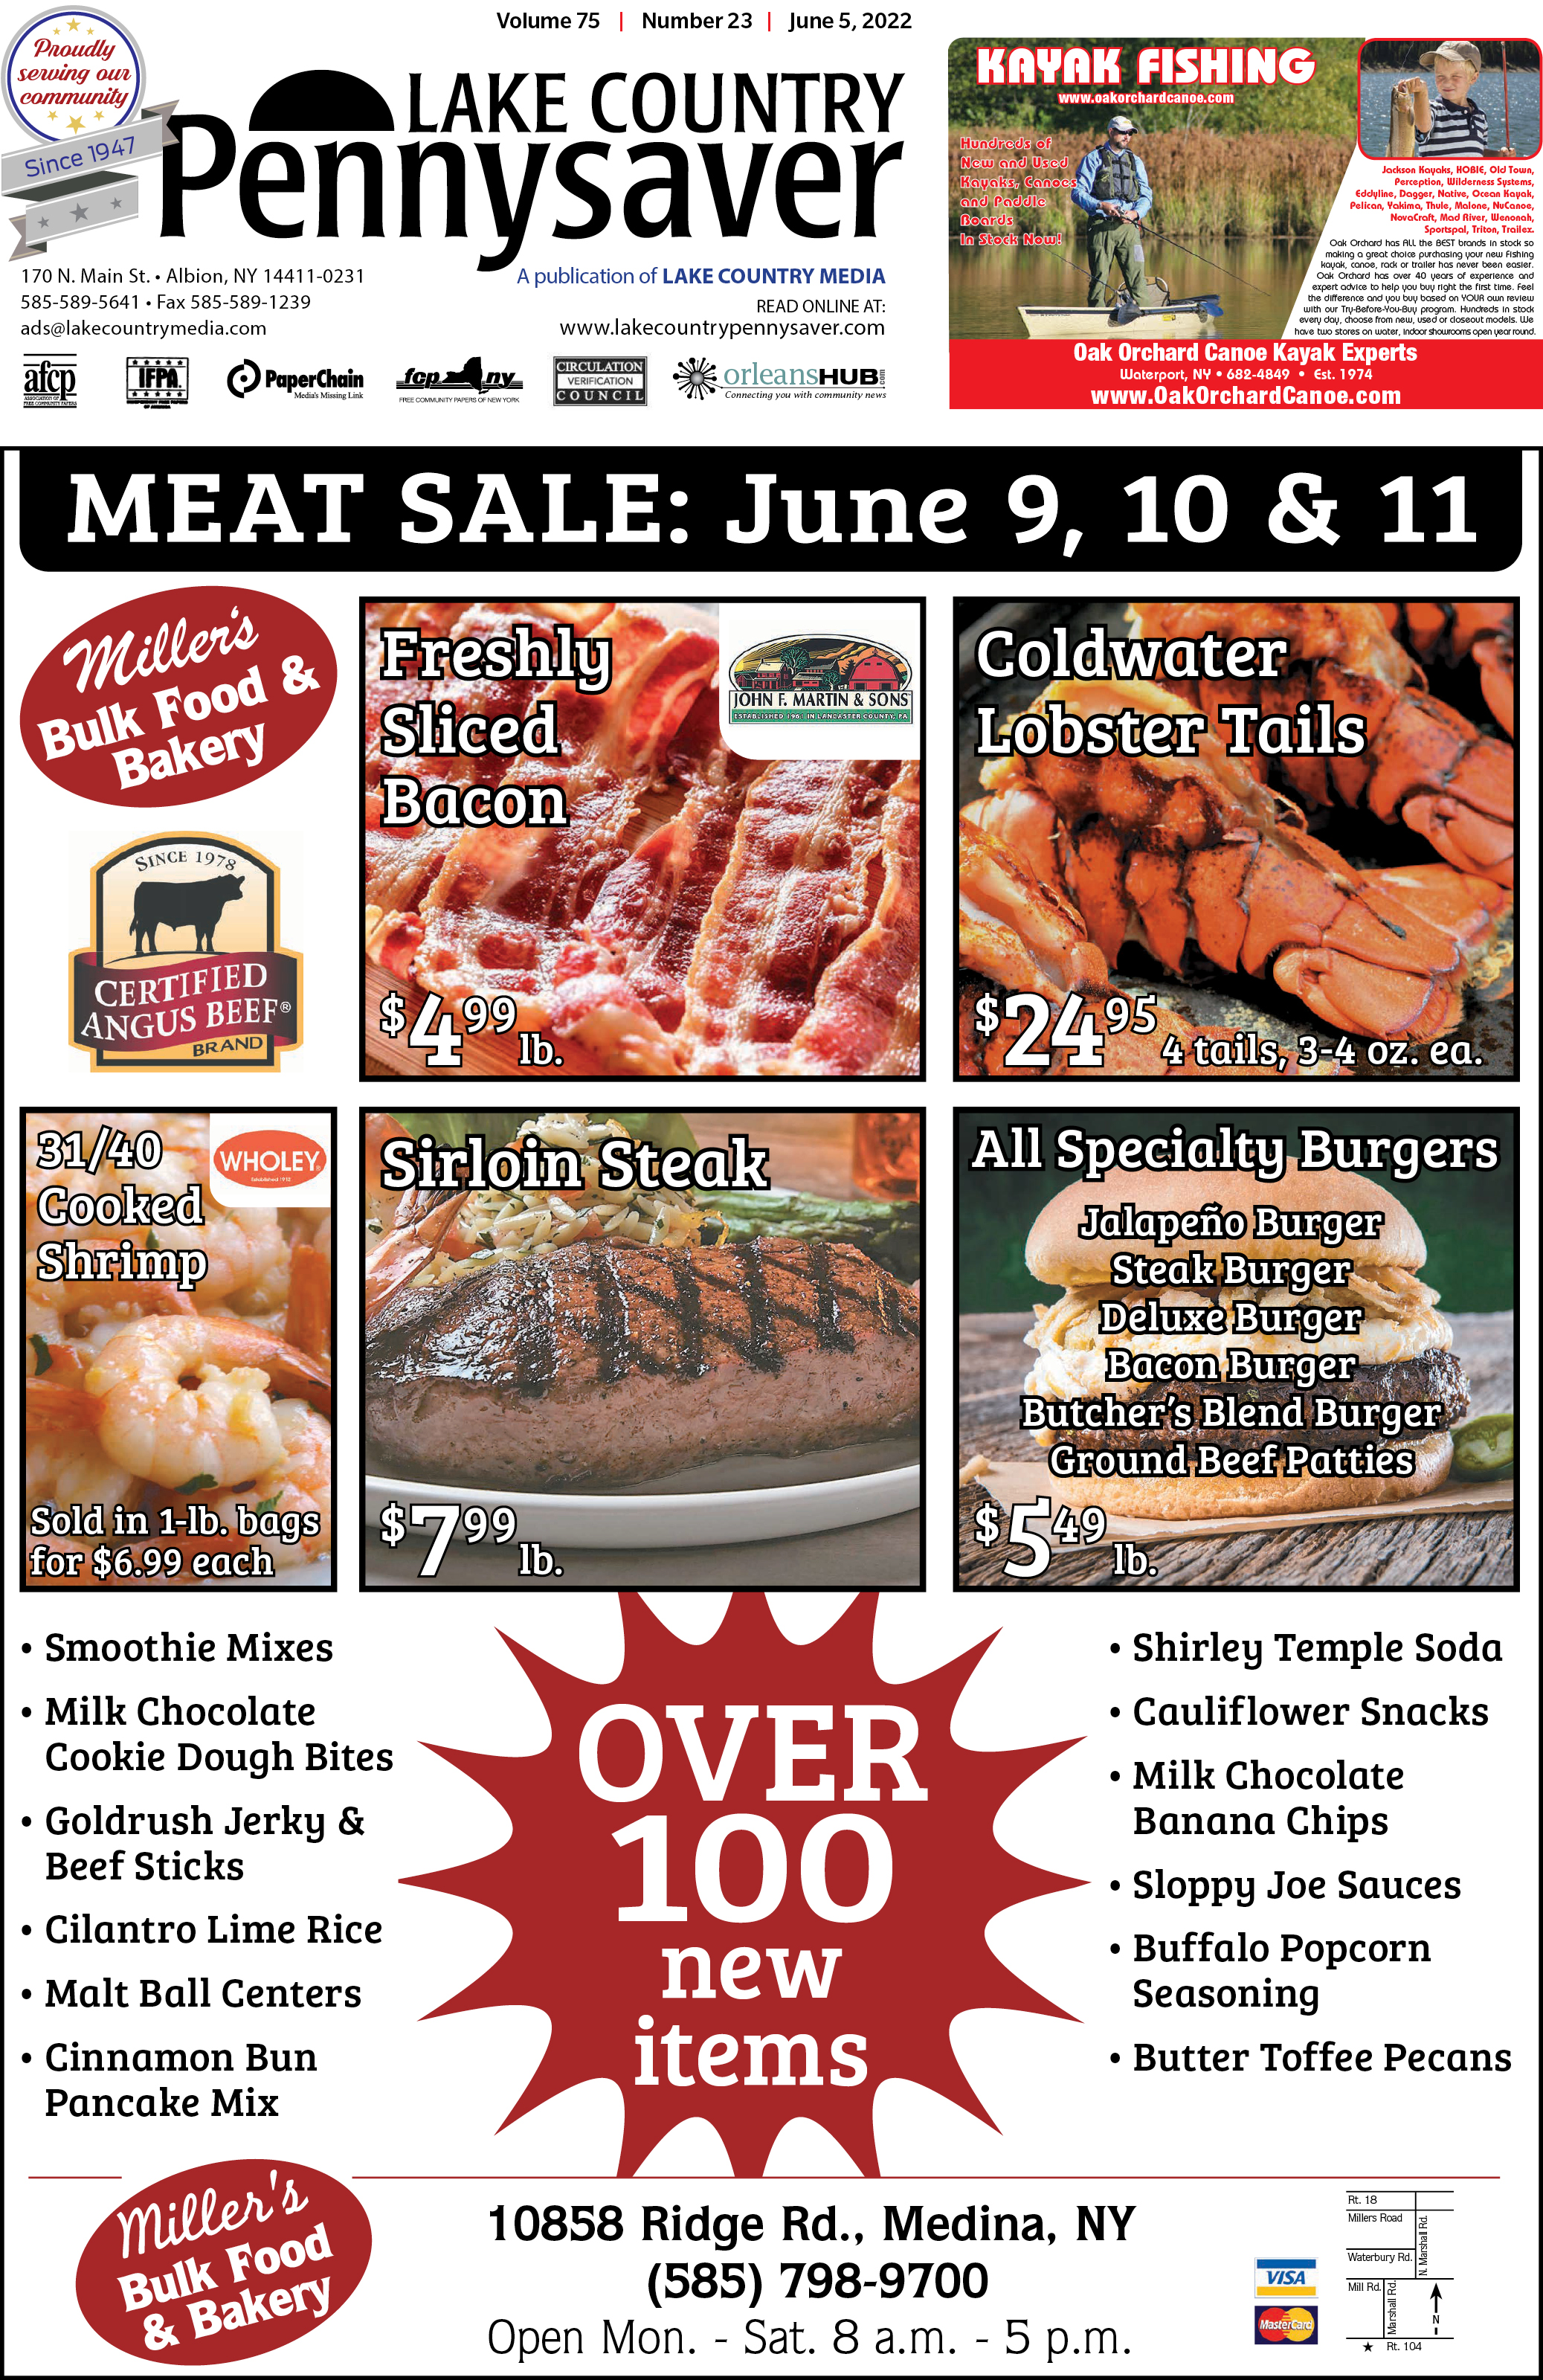 Lake Country Pennysaver, Albion, NY - Online Editions